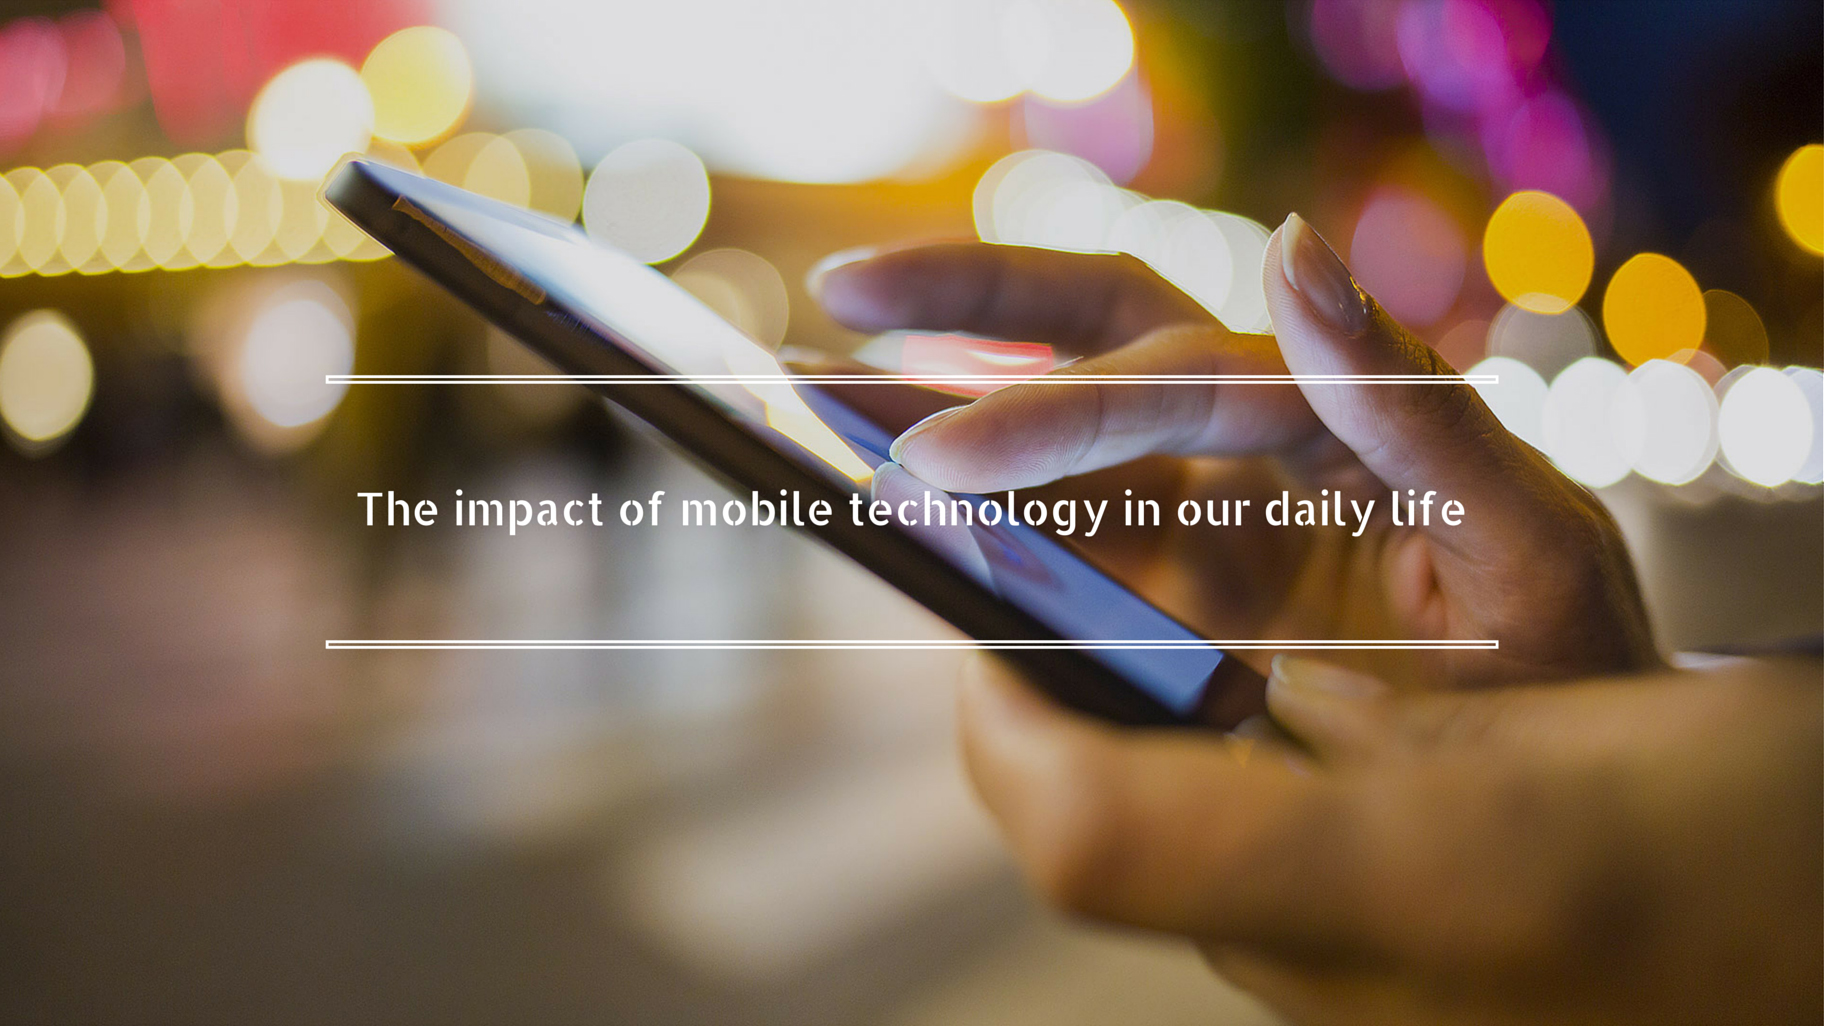 Top Reasons To See Why Mobile Phones Are So Essential For Our Daily Use